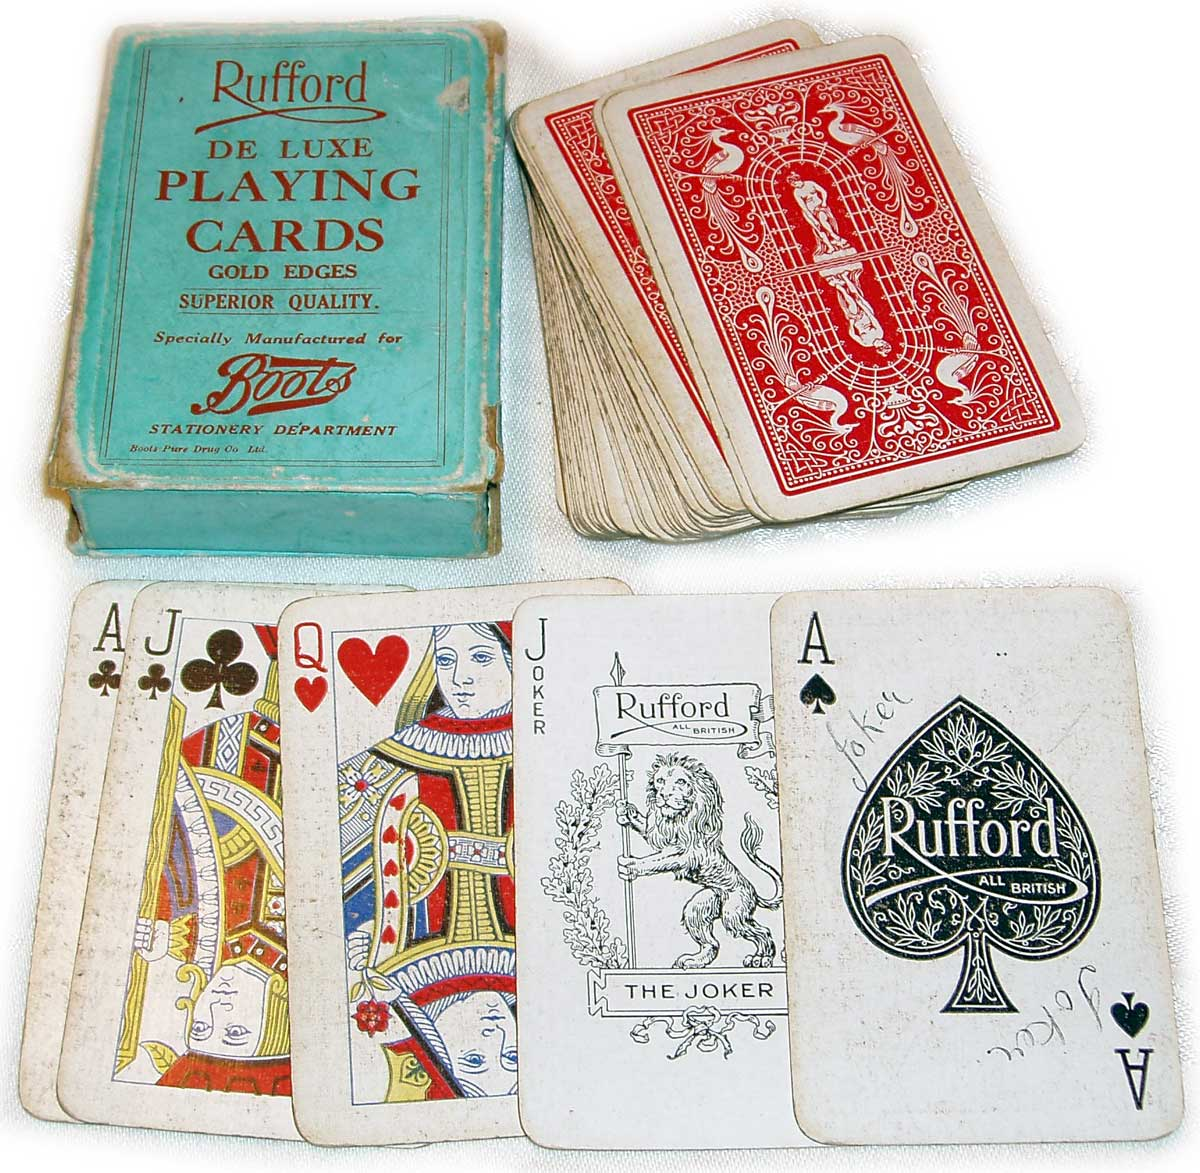 Rufford playing cards, De la Rue